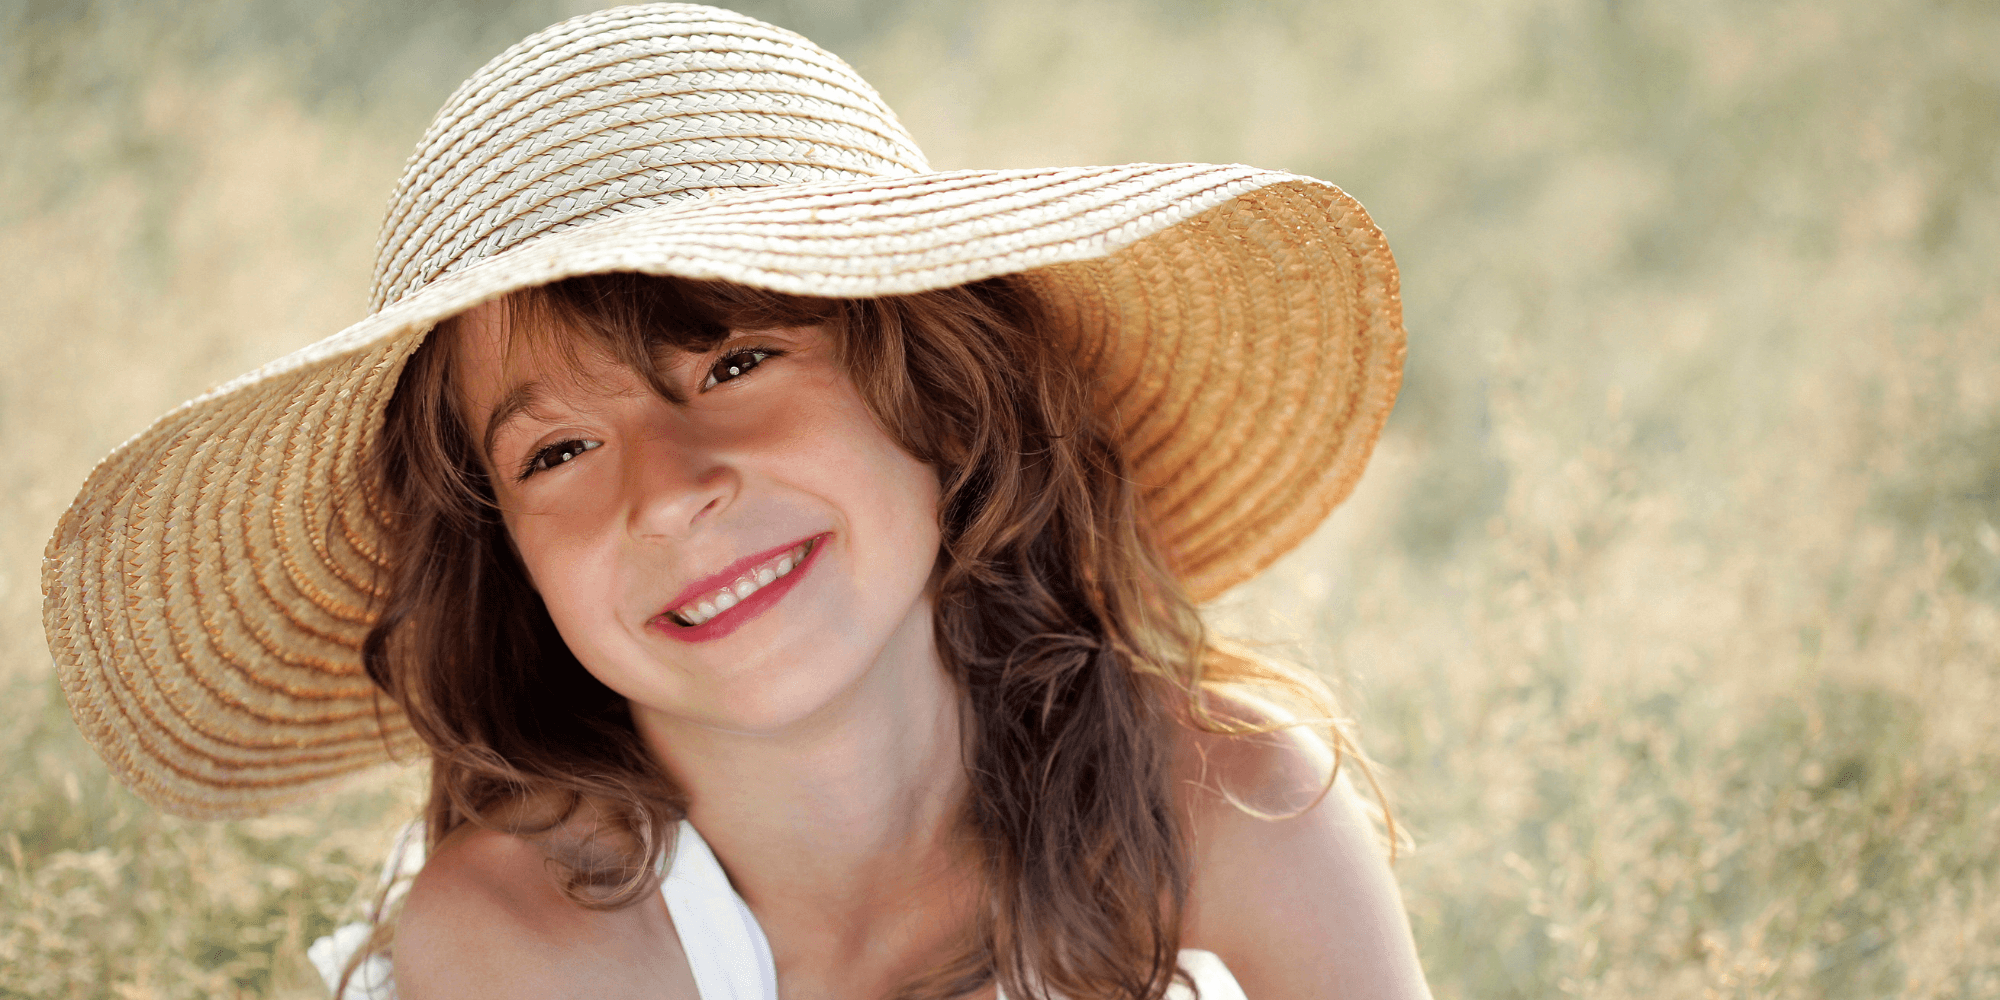 Little girl in a sun hat smiling